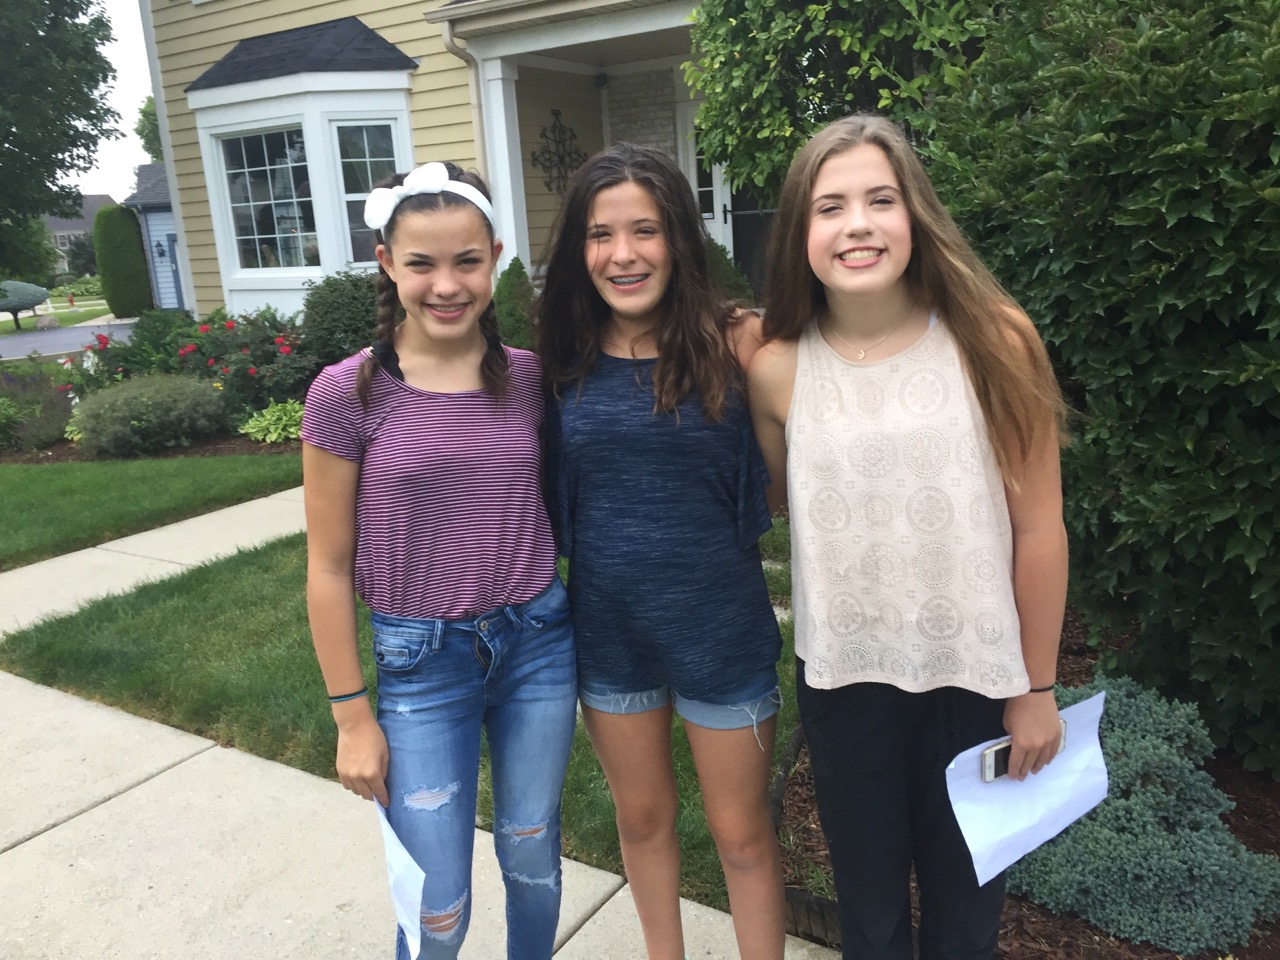 The three sisters on their first day of freshman year. Although they aren't as close as they used to be they still find an importance in mantaing a bond, says Julia Lane.